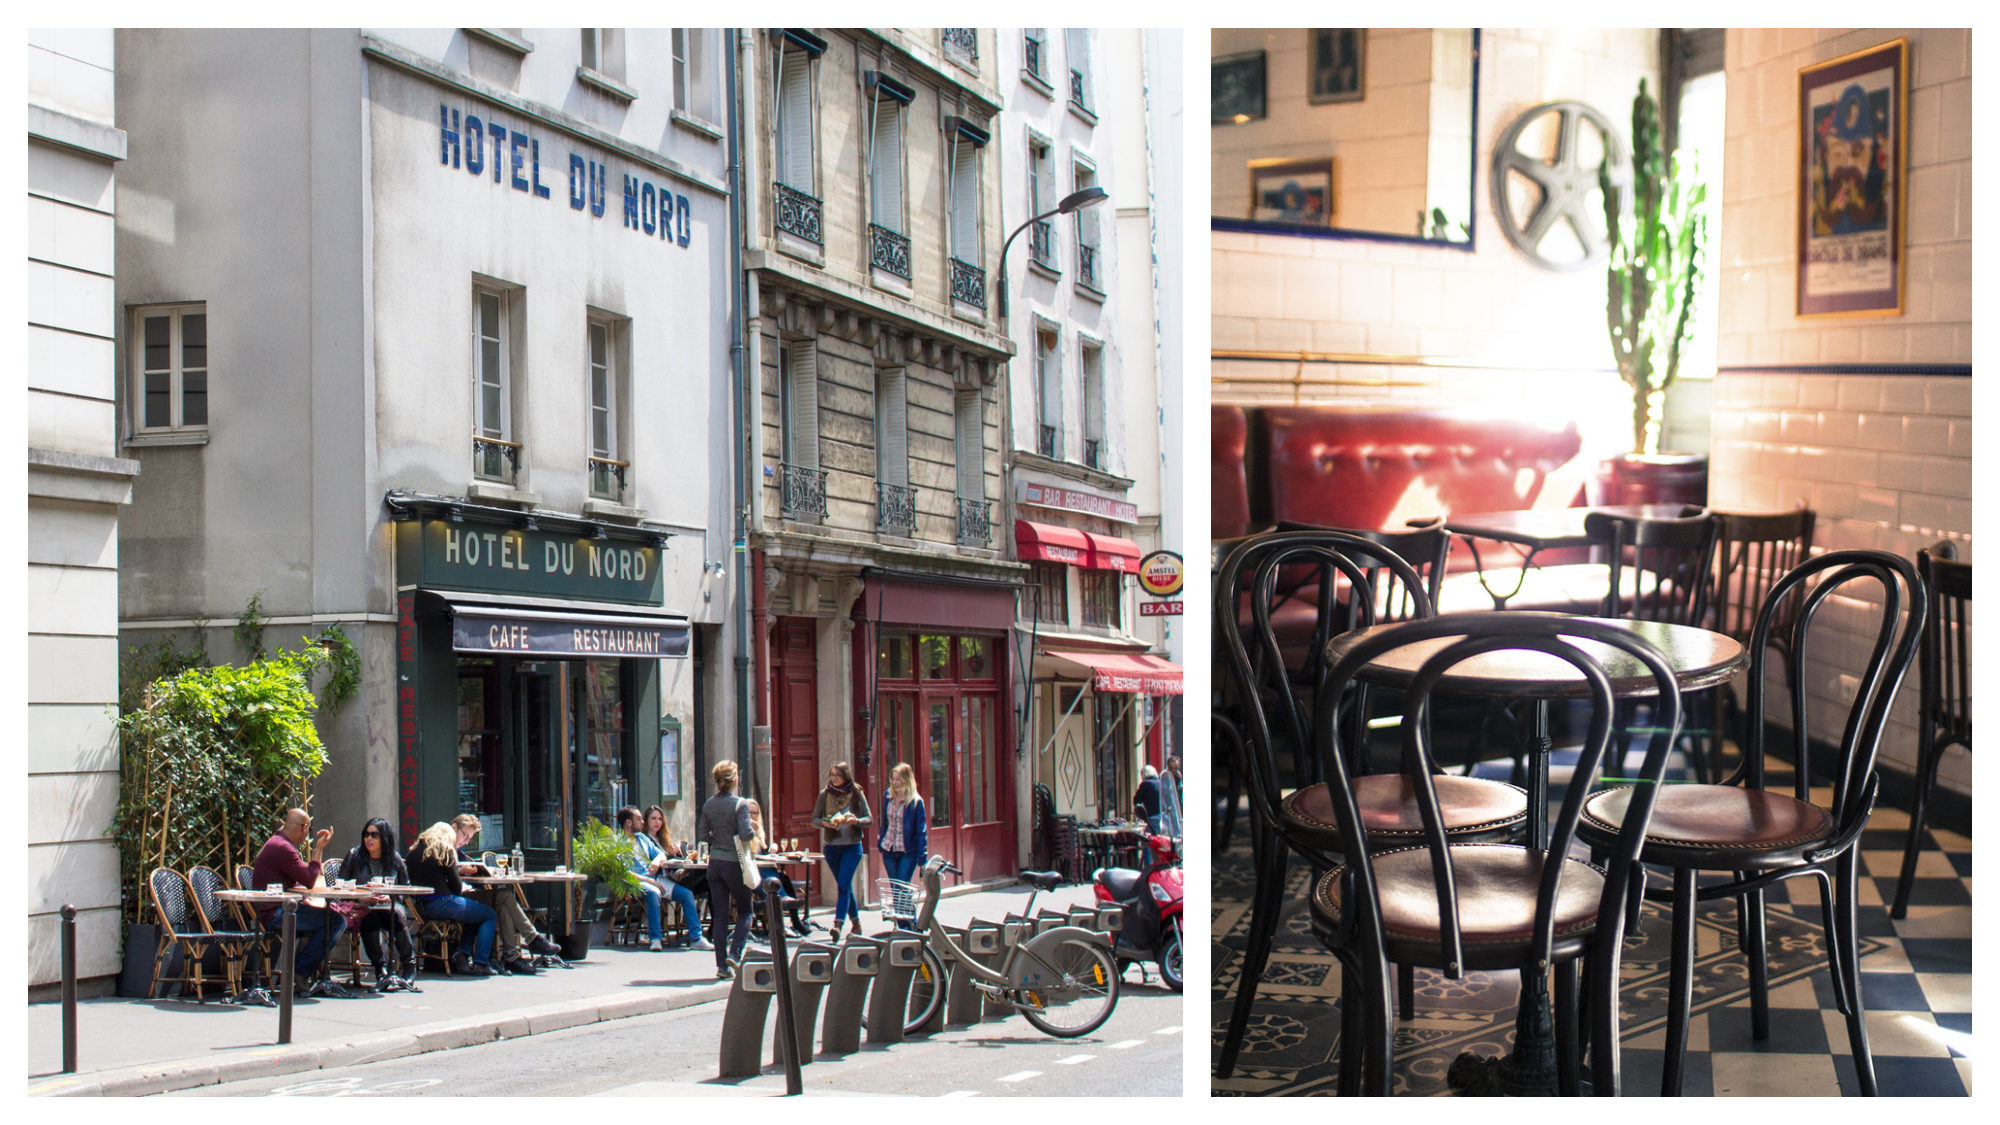 The Hotel du Nord restaurant on the banks of the Canal Saint Martin in Paris (left). Inside the restaurant there are wooden bistro tables and chairs on chequered floors (right).